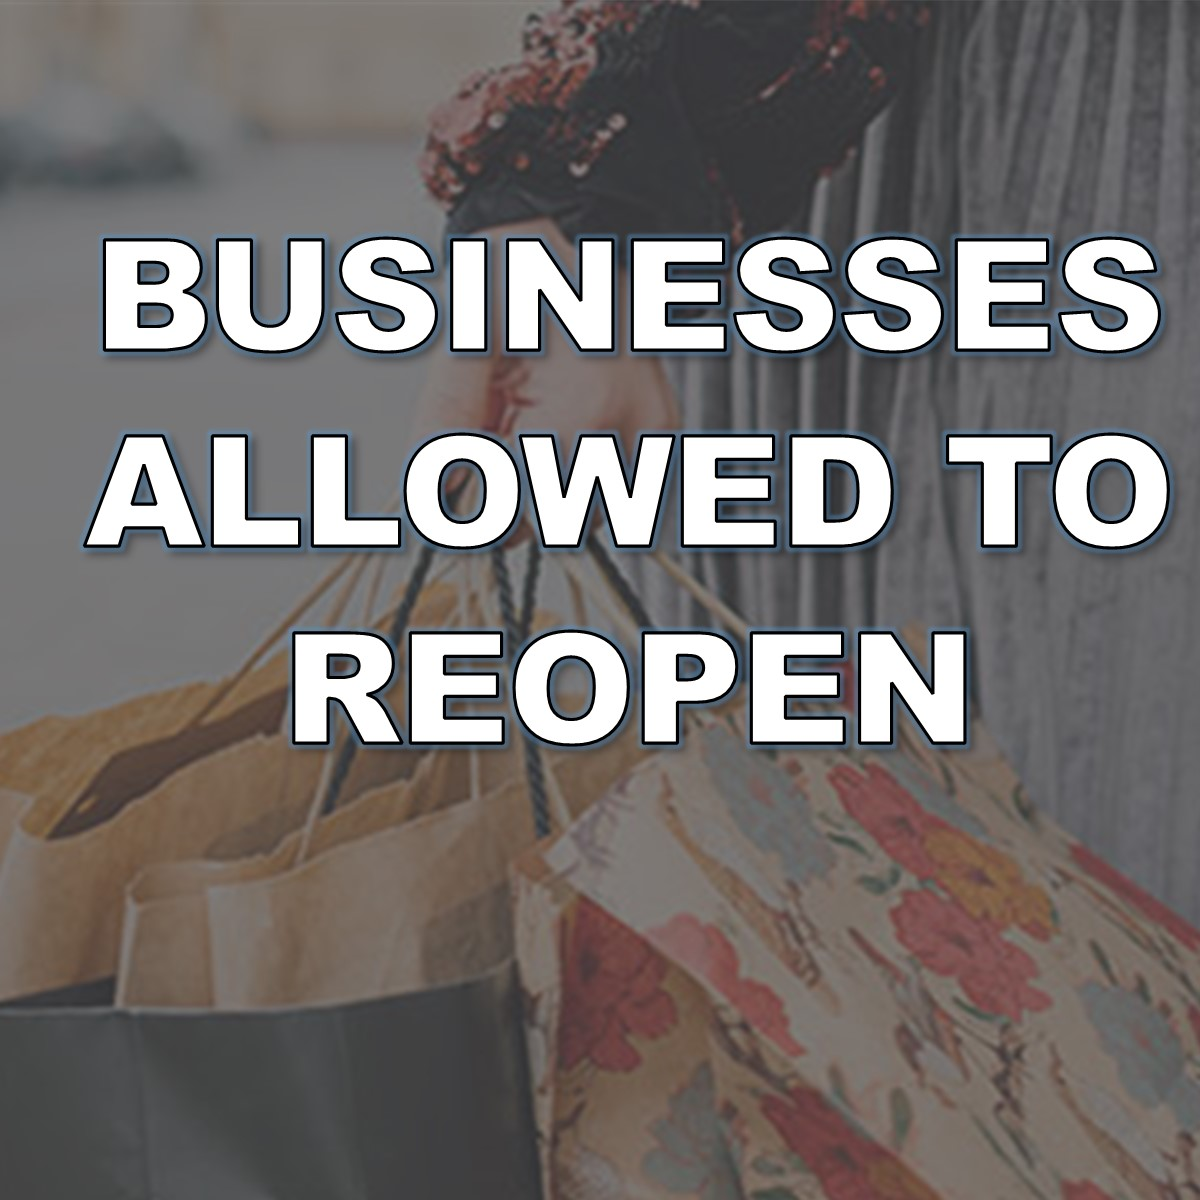 BUSINESSES ALLOWED TO REOPEN